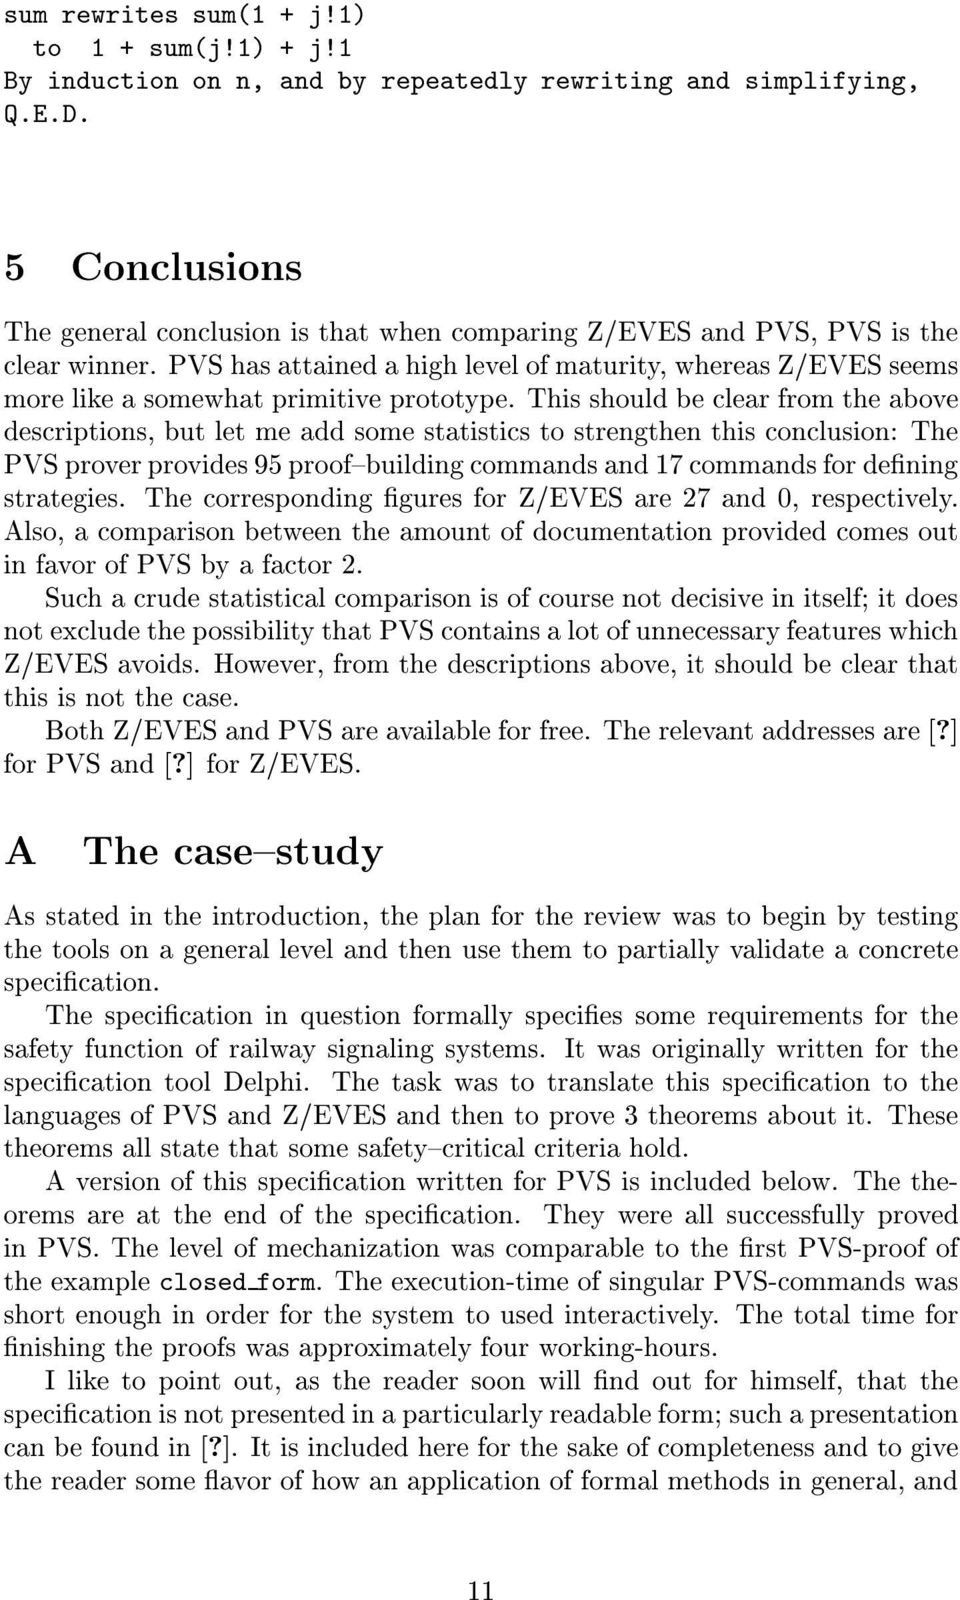 PVS has attained a high level of maturity, whereas Z/EVES seems more like a somewhat primitive prototype.